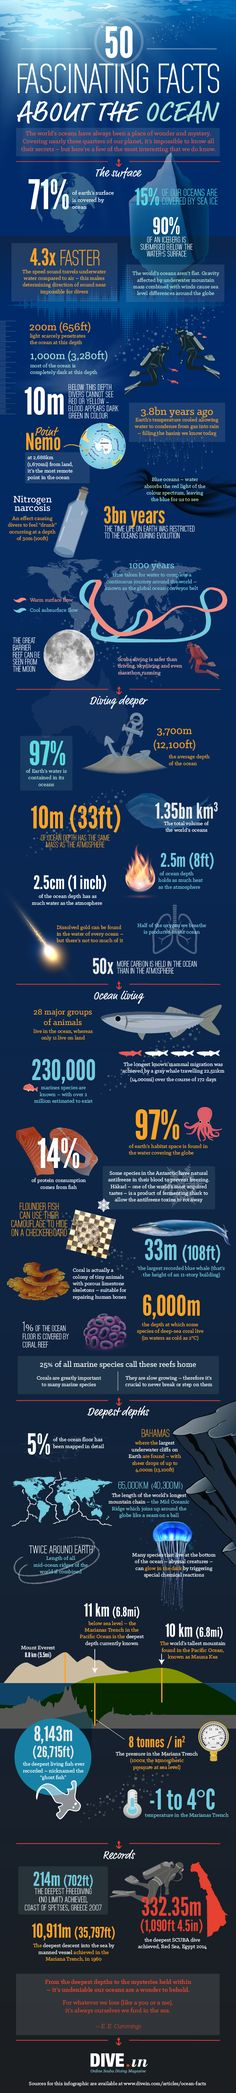 50 Fascinating Facts about the Ocean #infographic #Ocean #Facts